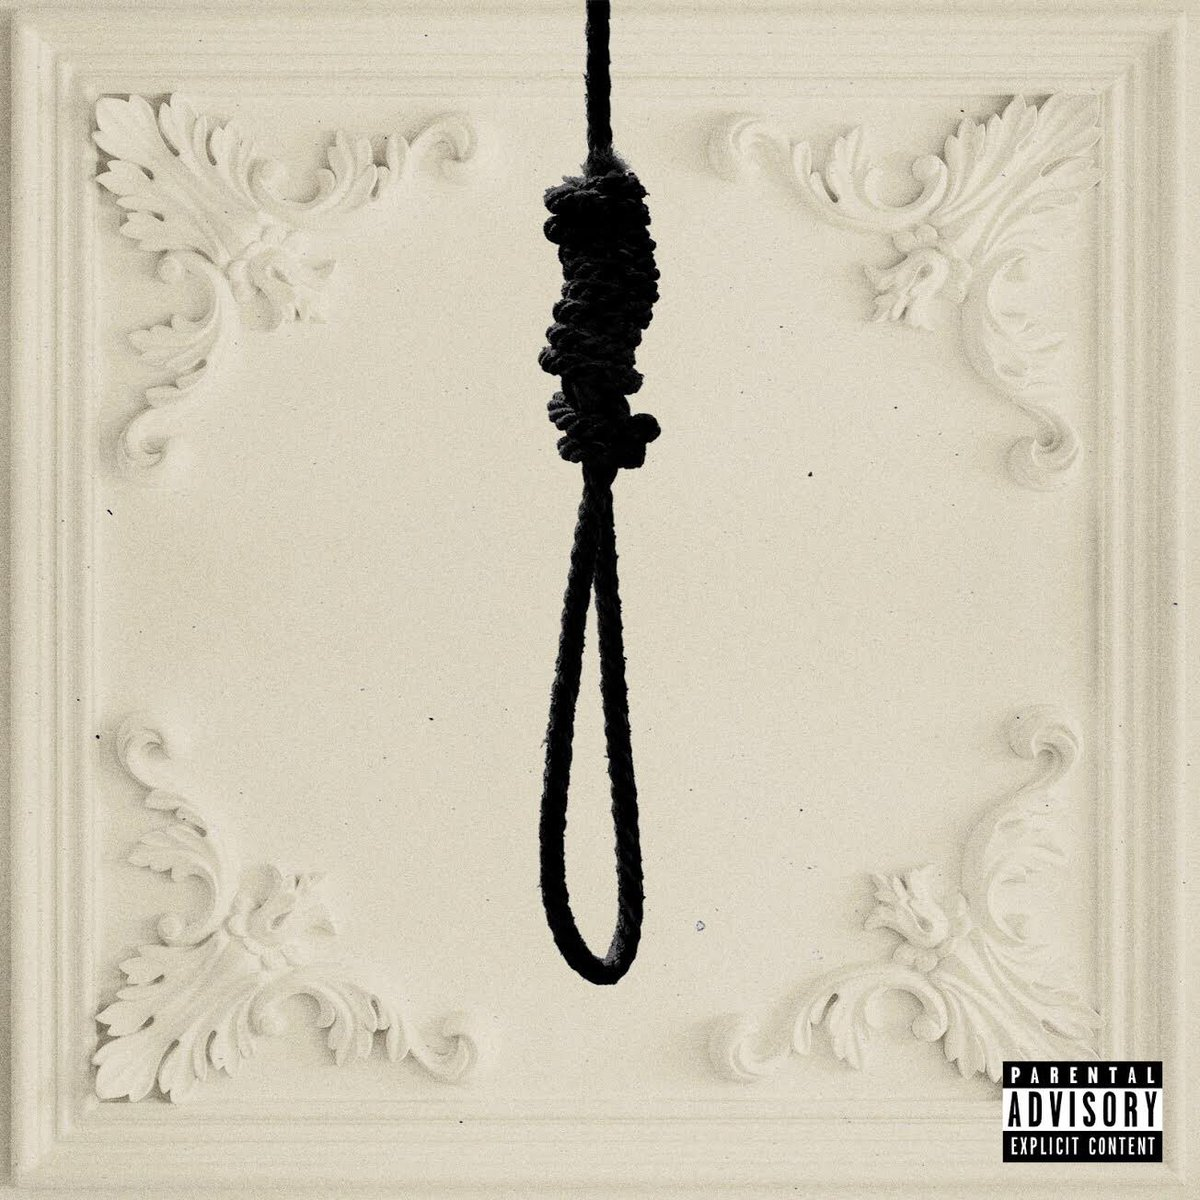 cashmere noose deluxe edition 2 brand new songs this friday $3.99 itunes